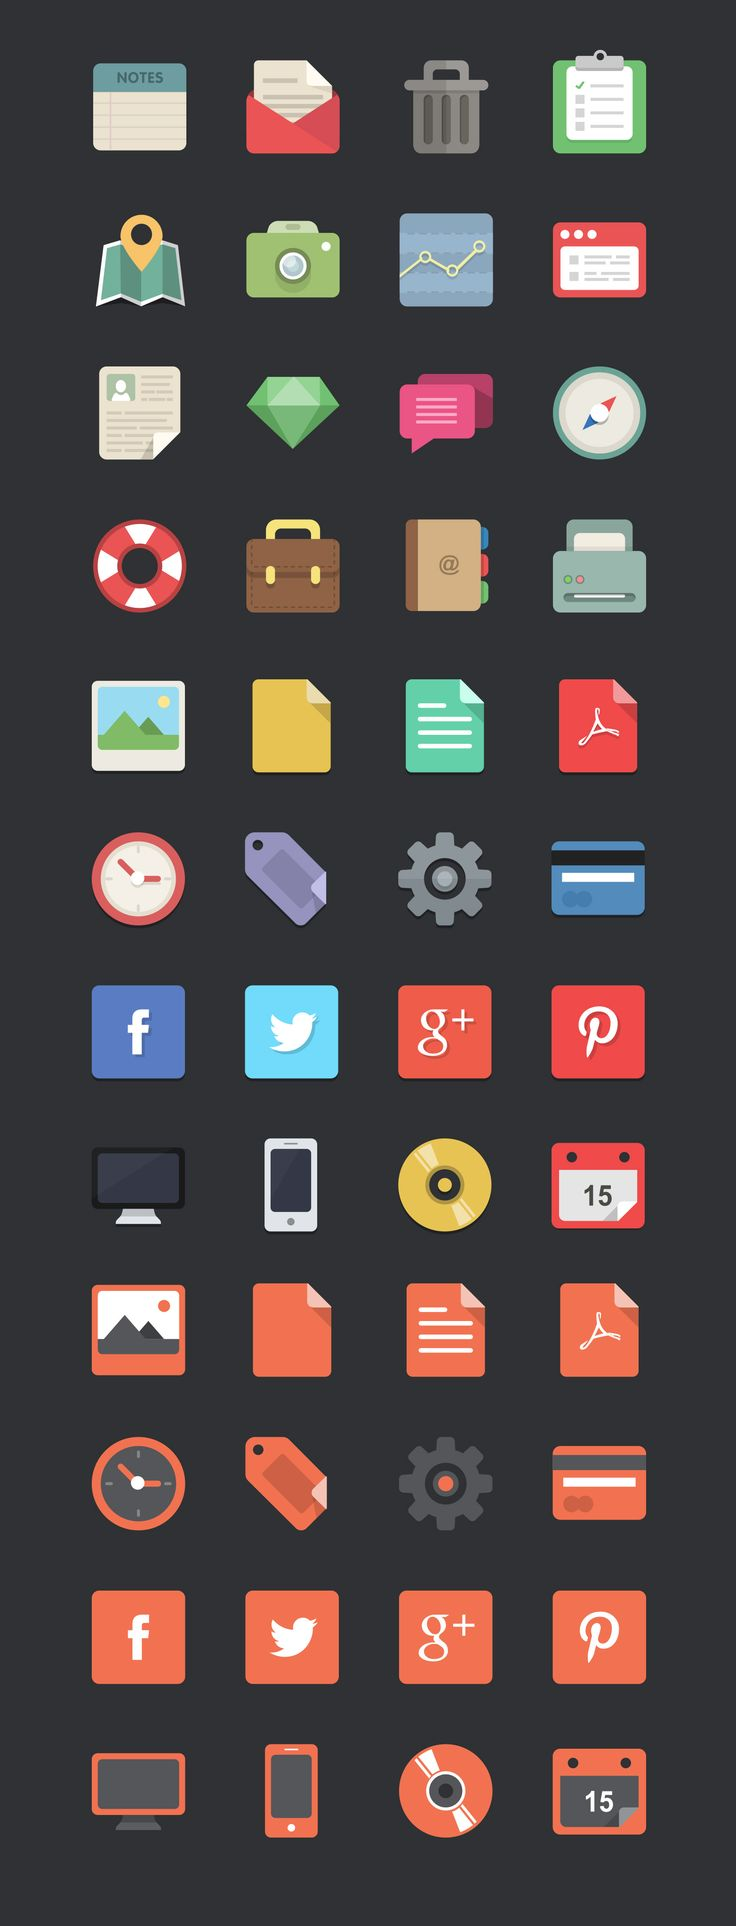 WDD_IconsPreview. Free download: 48 flat designer icons